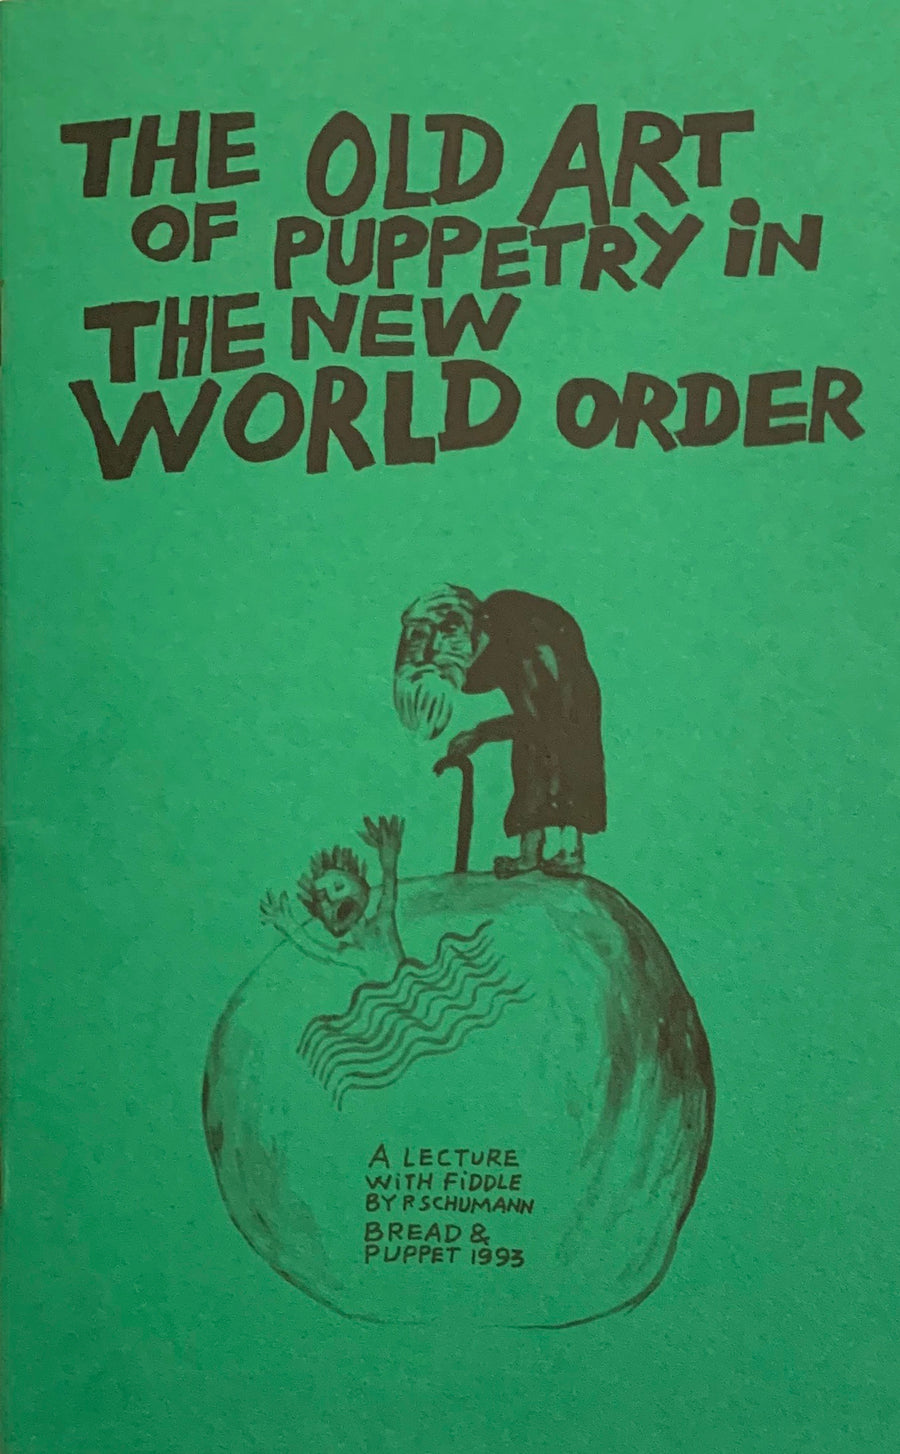 The Old Art of Puppetry in the New World Order: A Lecture with Fiddle